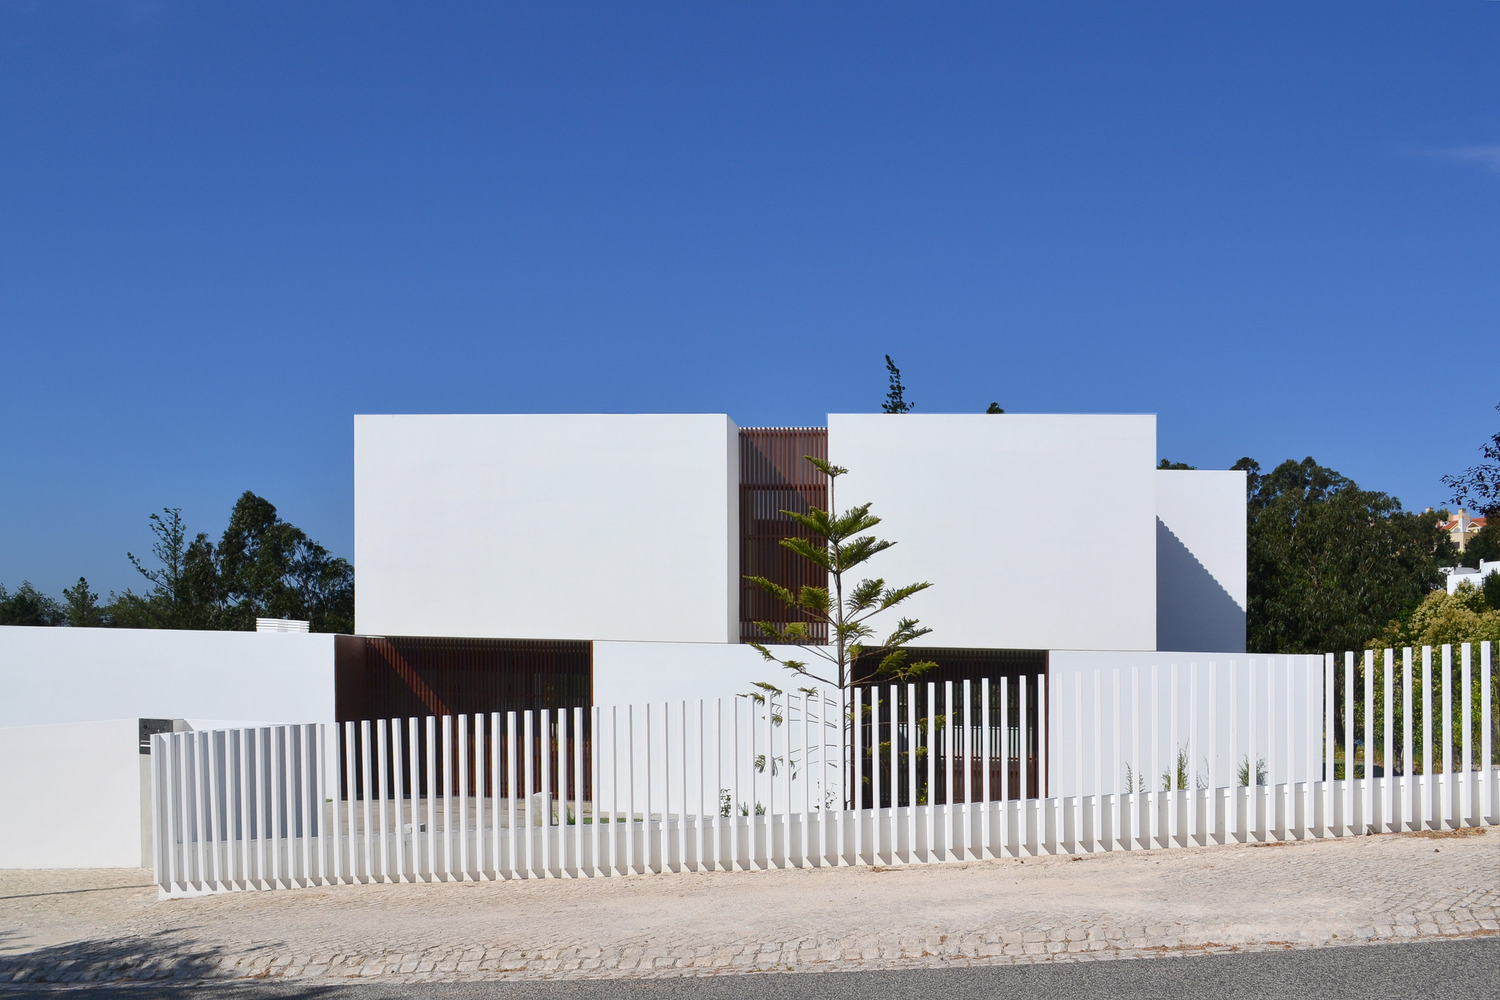 3_House in Belas Clube de Campo_GGLL atelier_Inspirationist